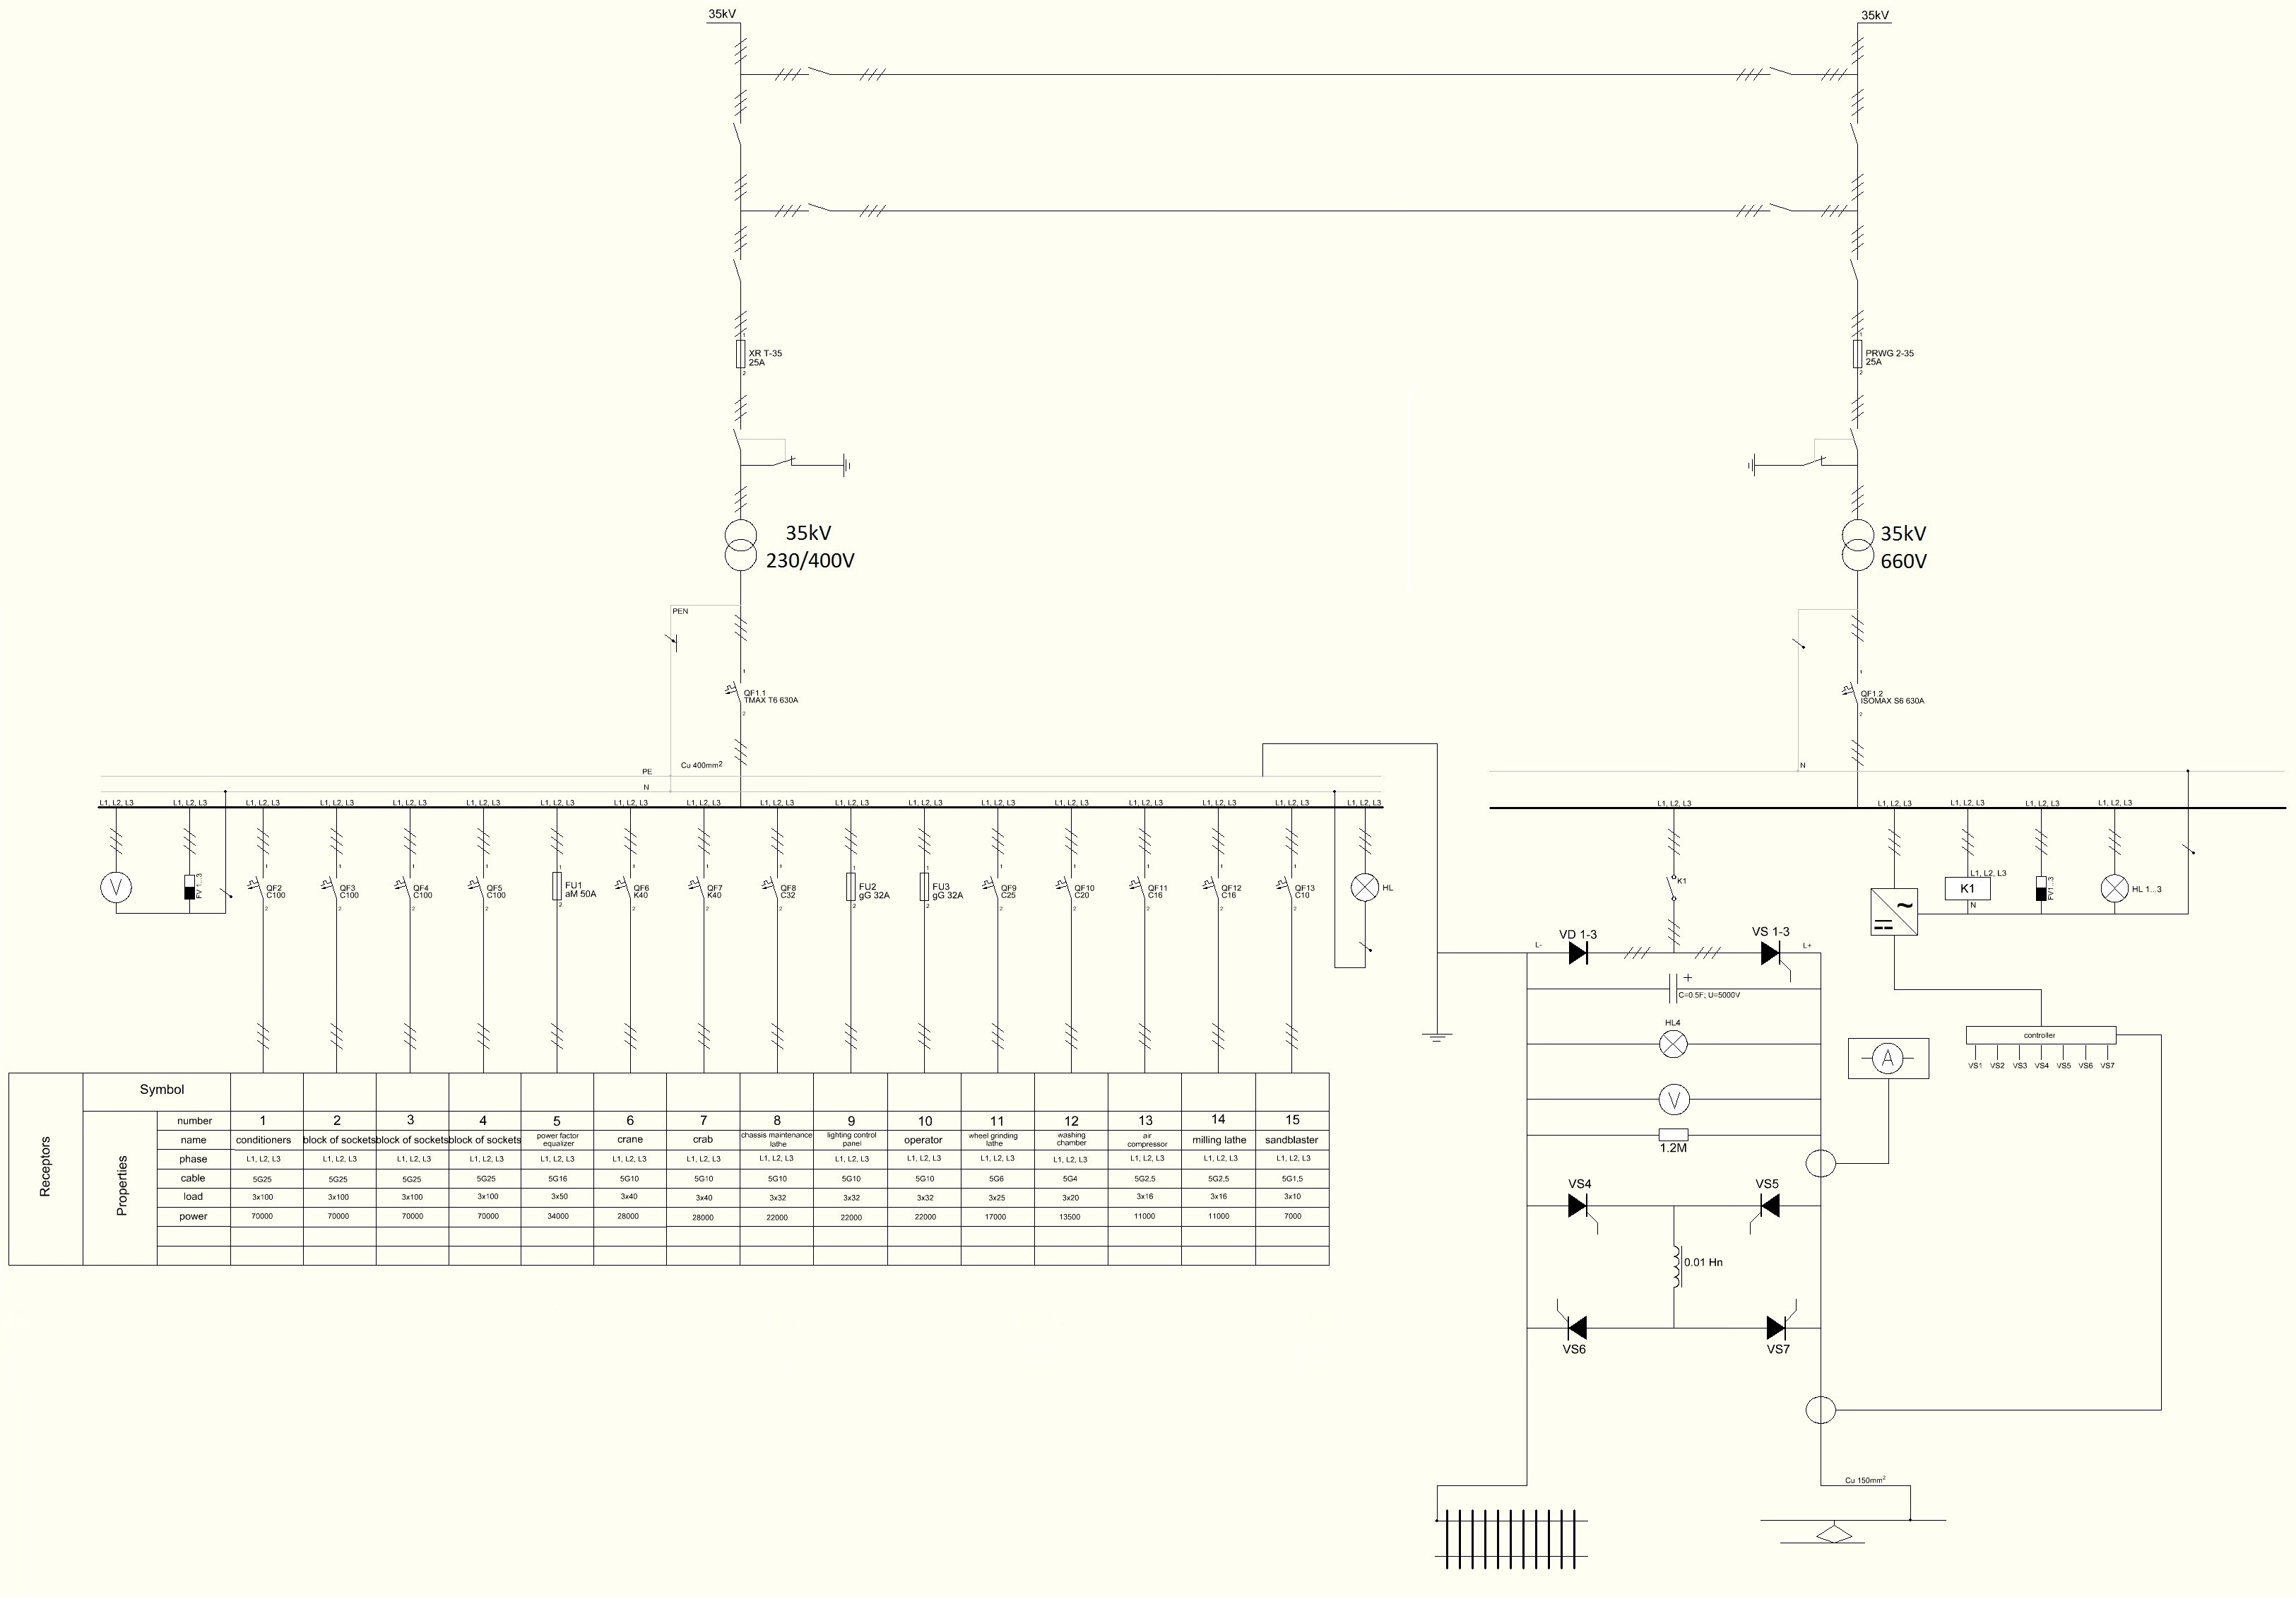 Filewiring Diagram Of Distribution Board For Ac And Dc Aplliences Wiring